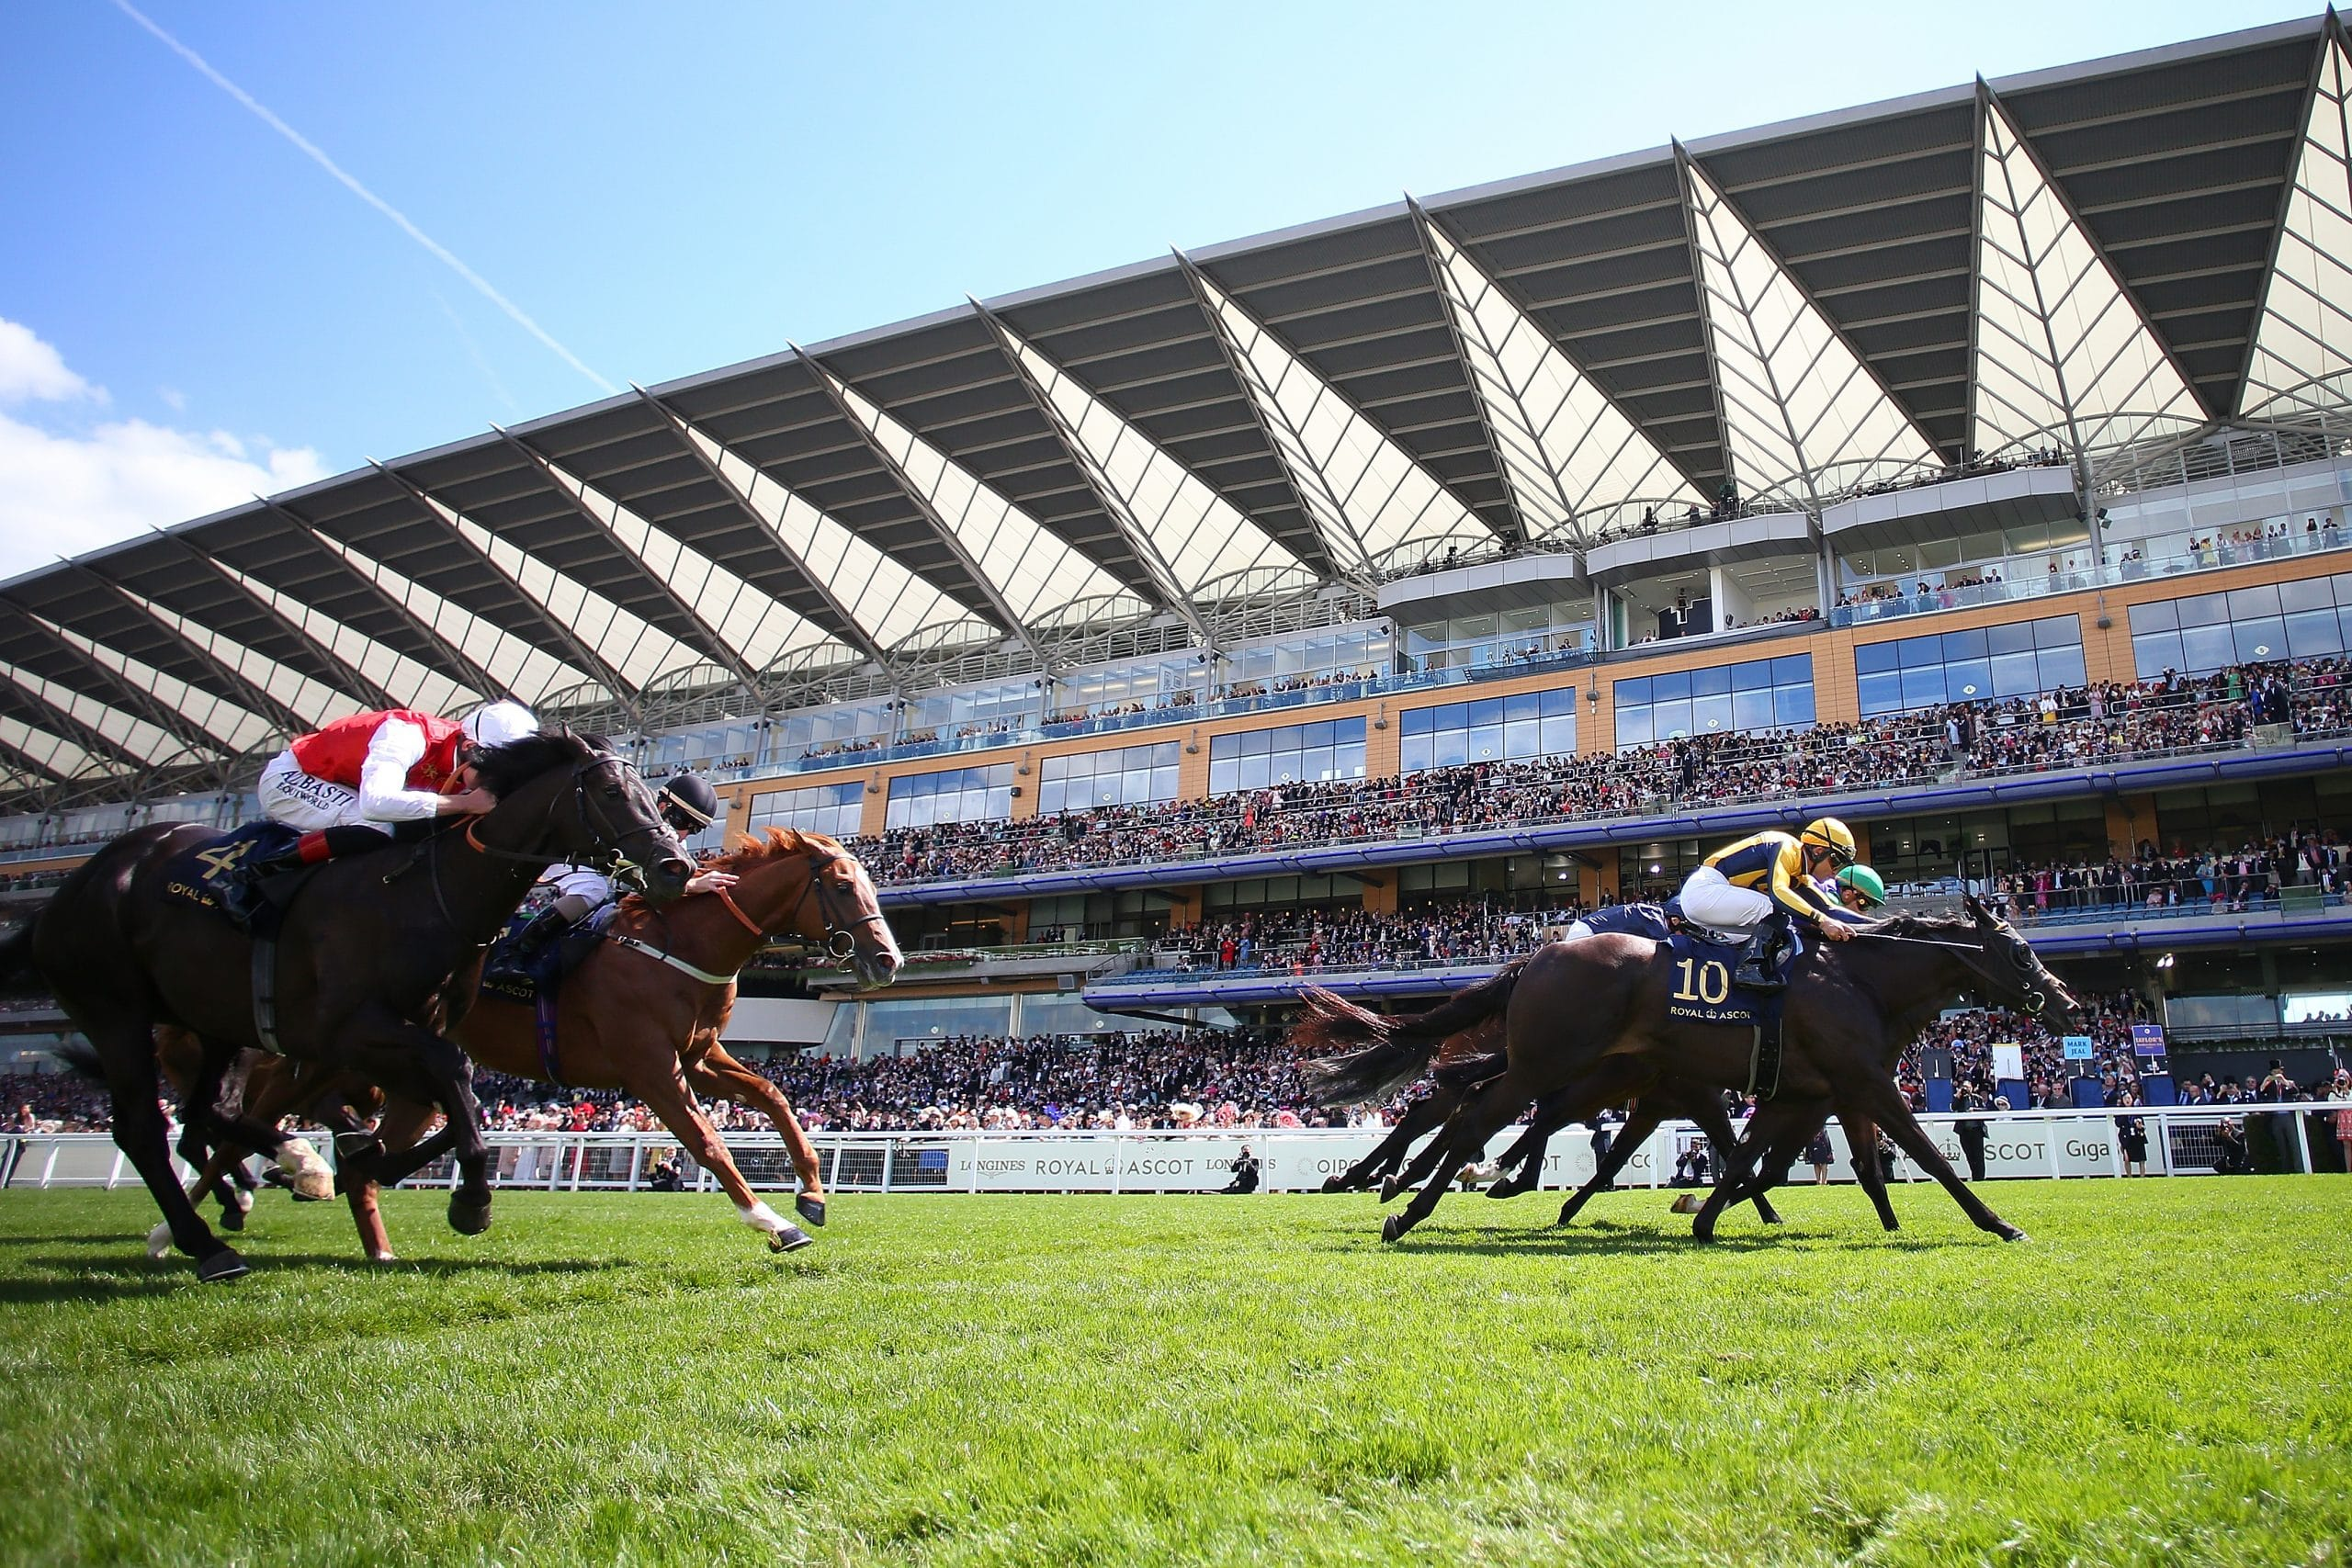 Colossus Bets' British Horse Racing review